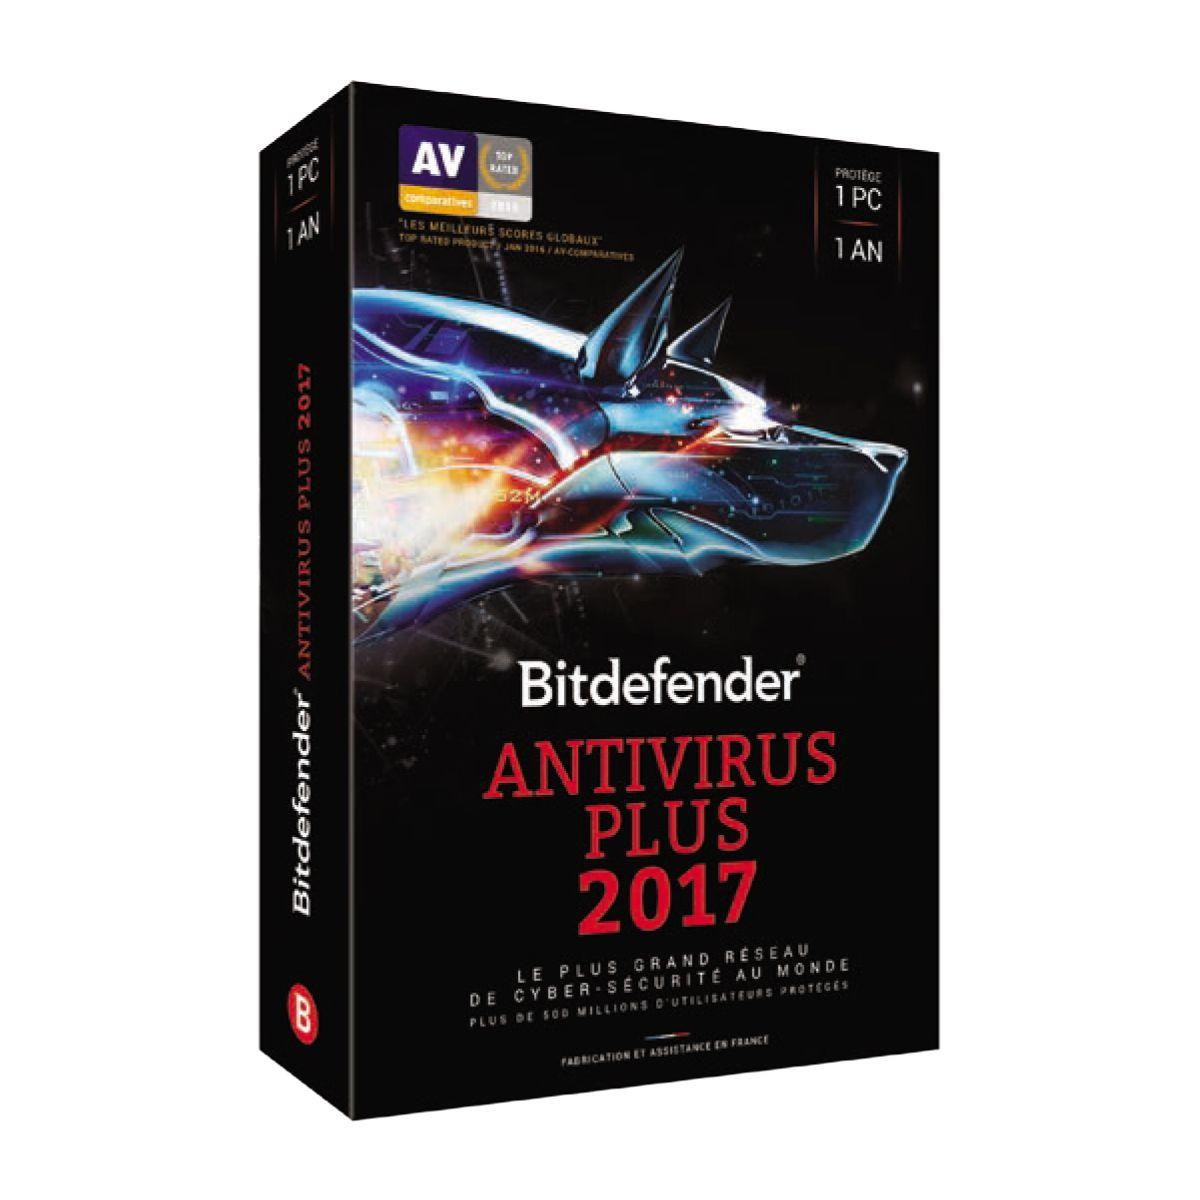 Logiciel pc bitdefender antivirus plus 2017 - (photo)